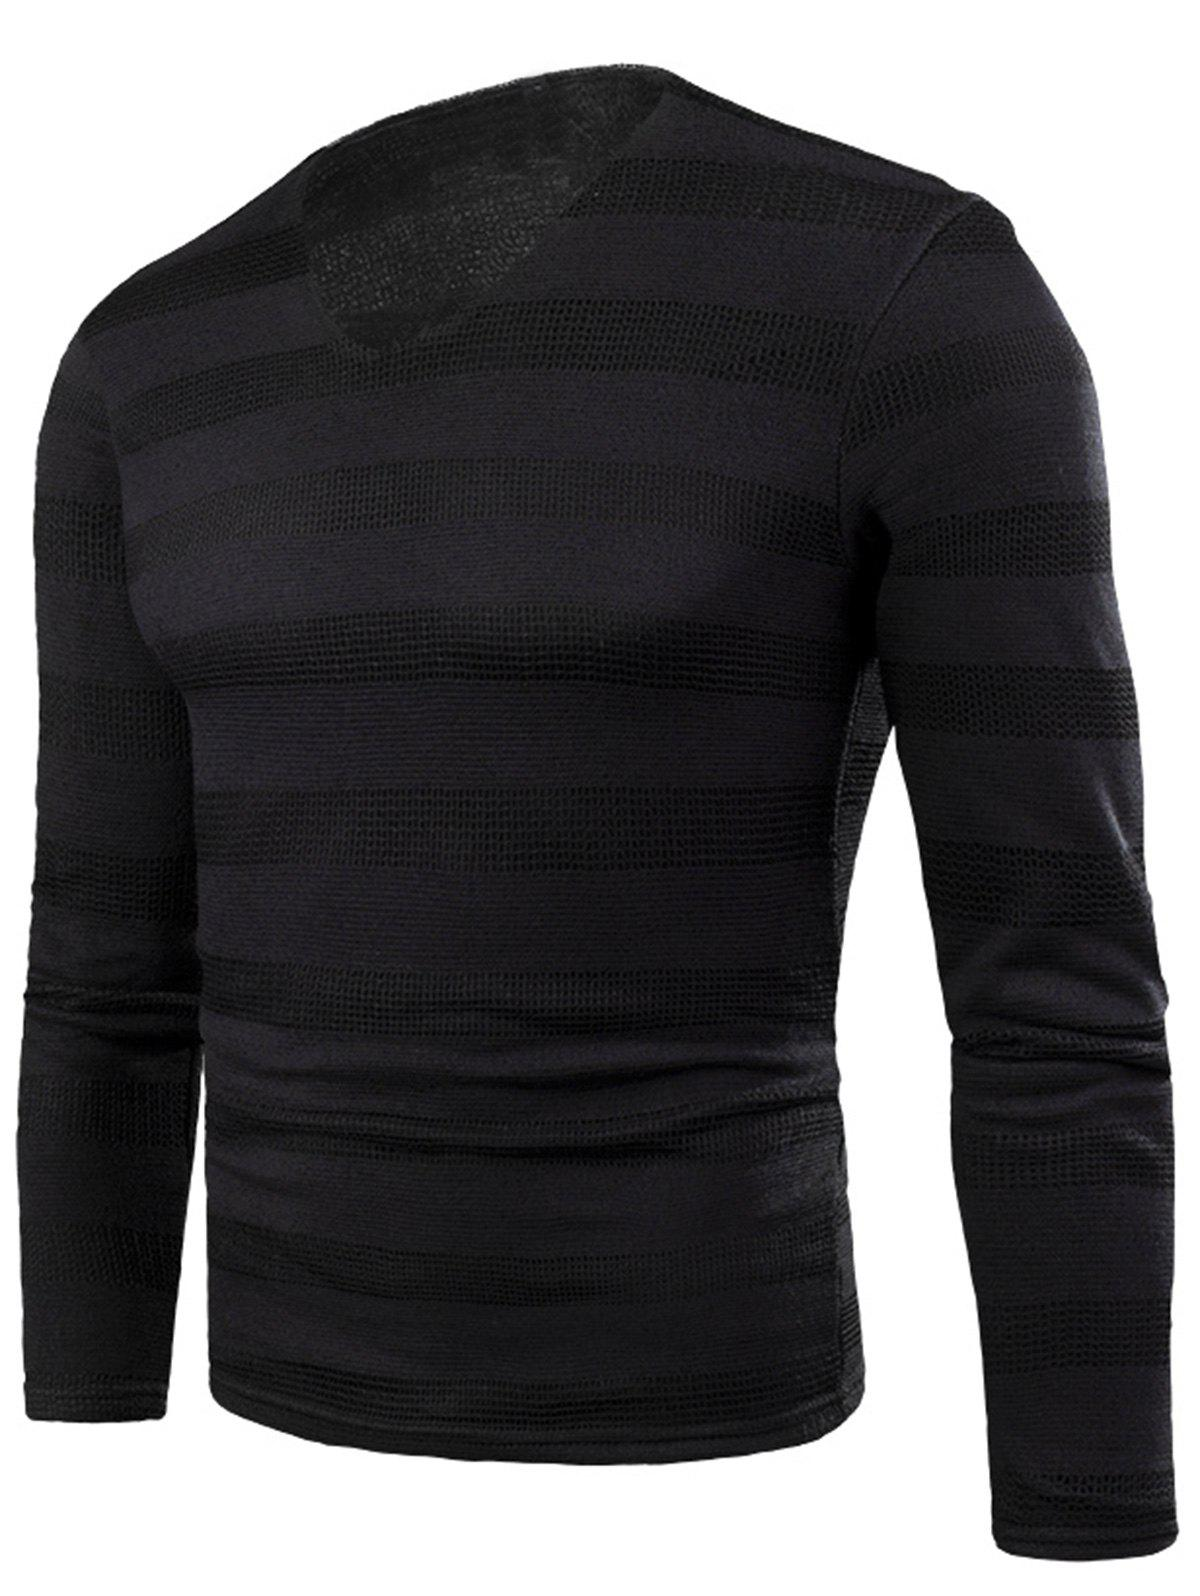 New V Neck Stripe Knitted Fleece T-shirt